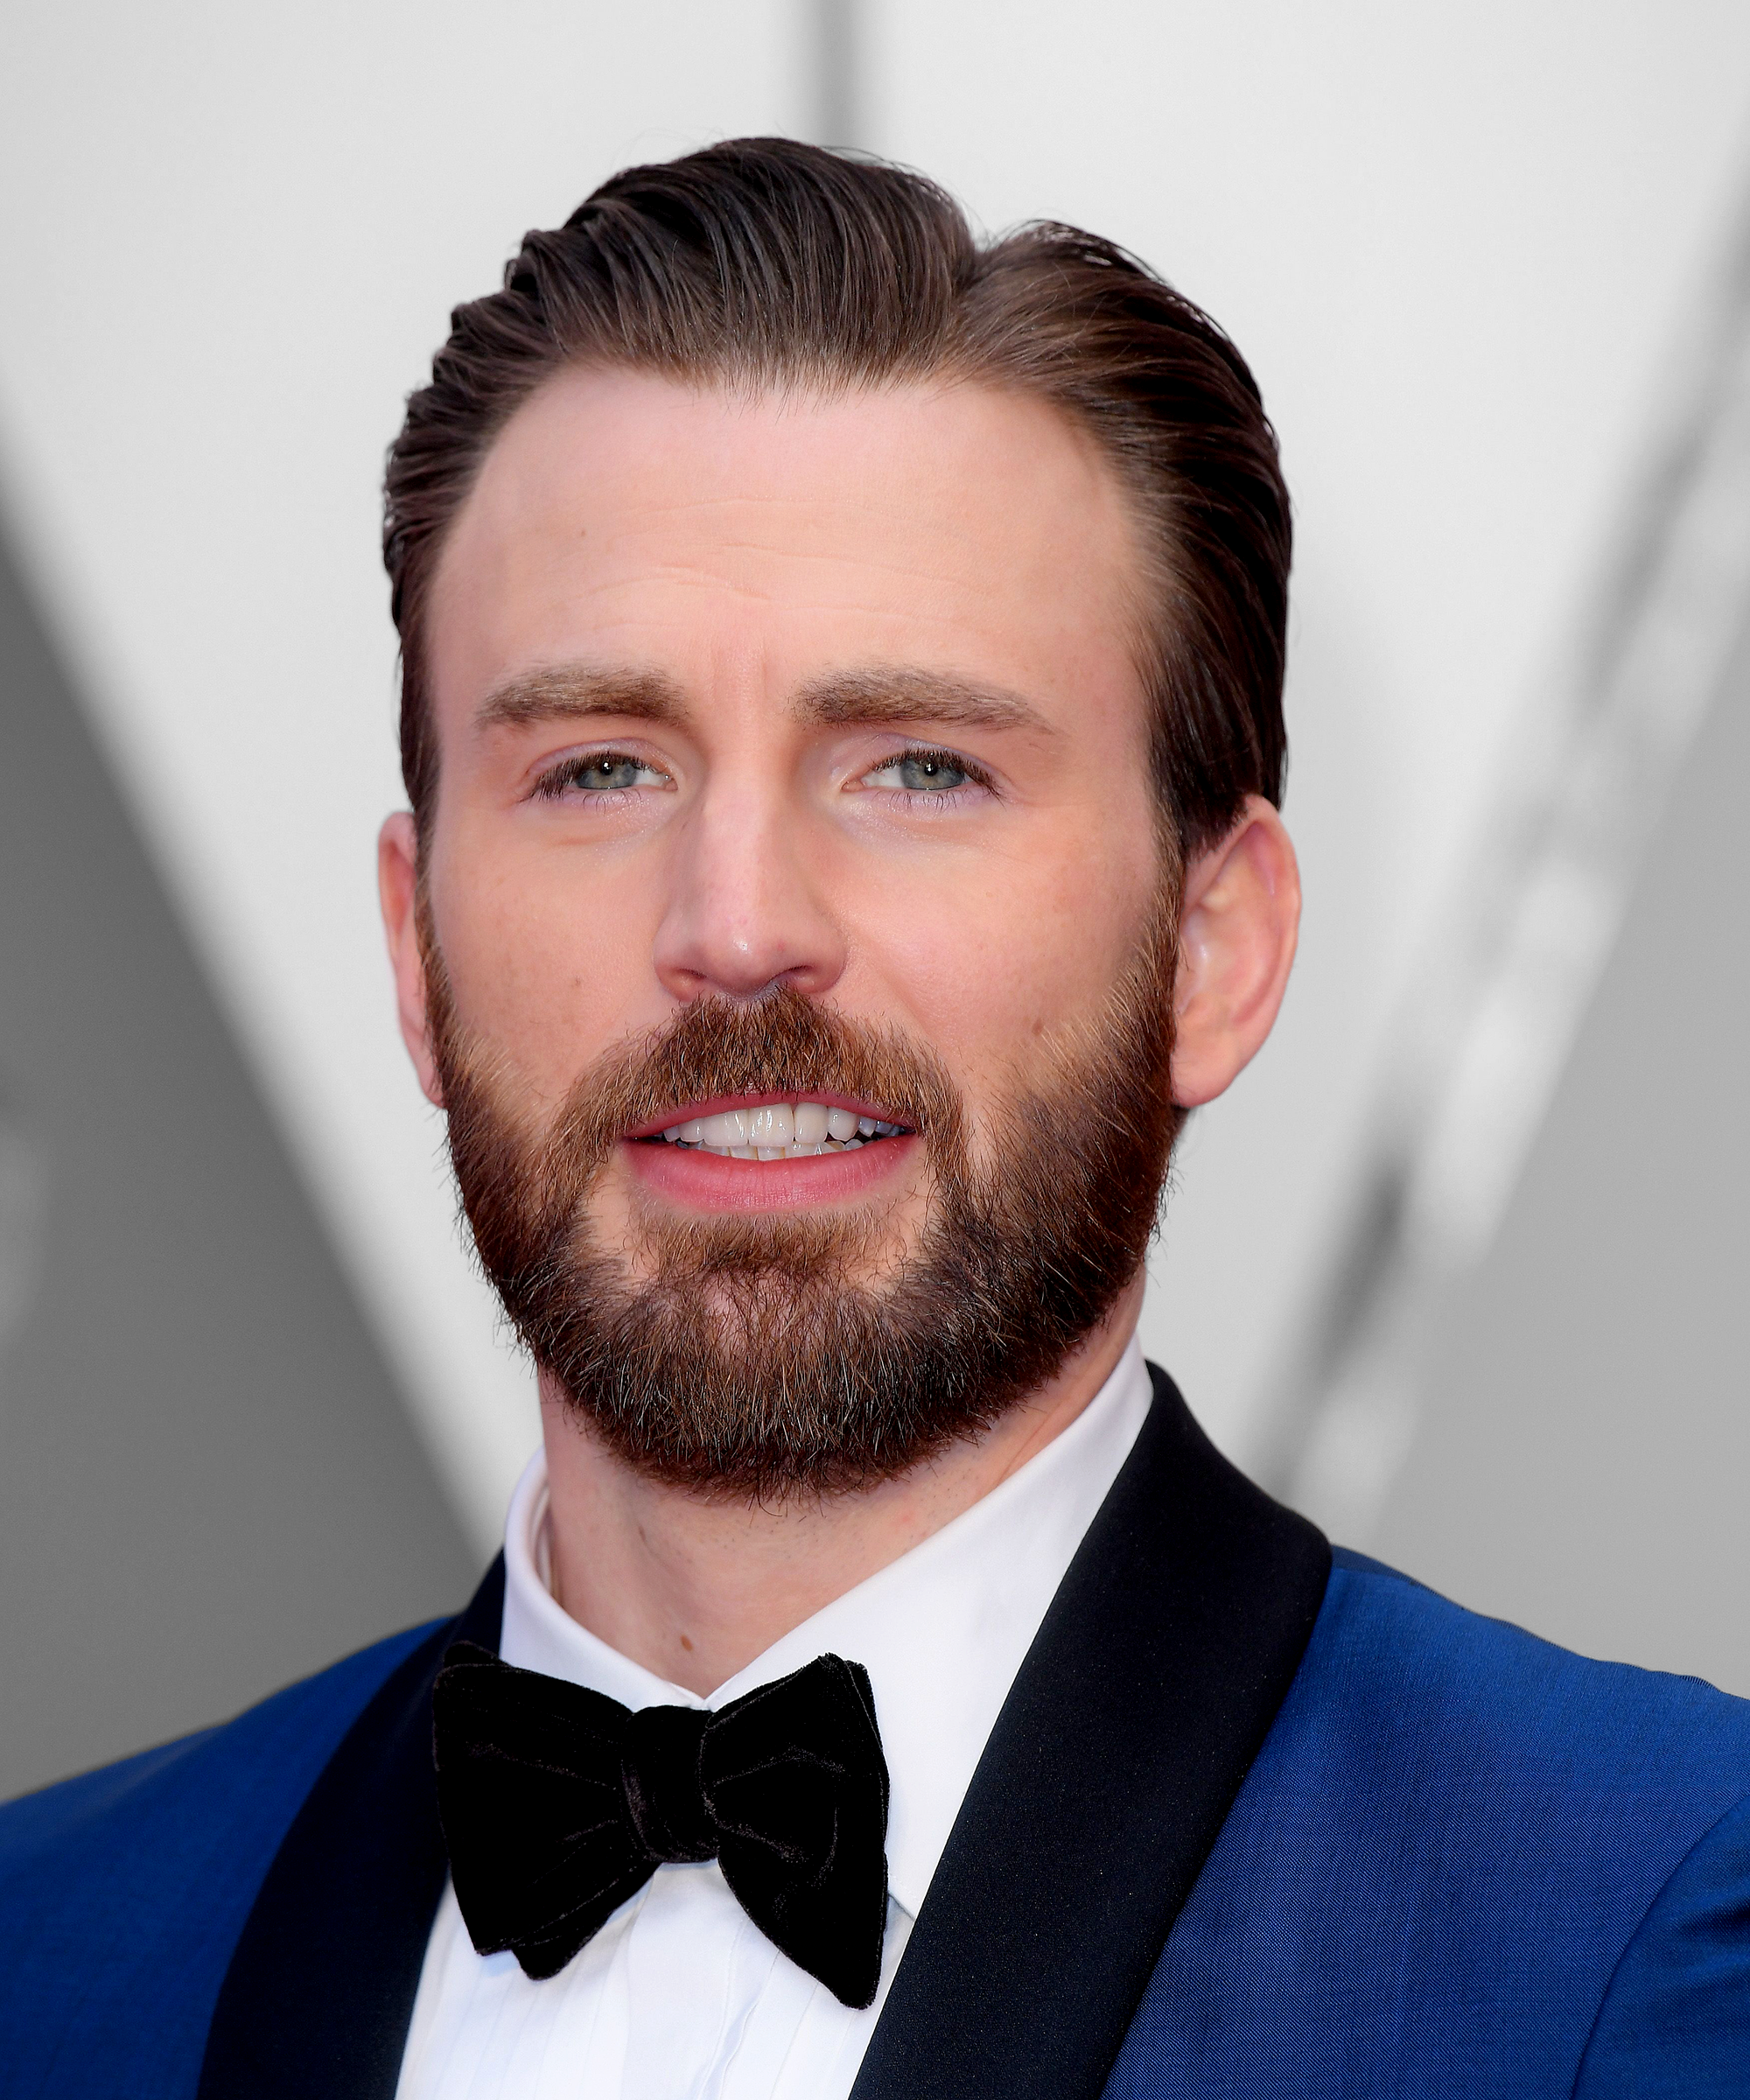 Chris Evans Cried Told Mom He Lost His Virginity